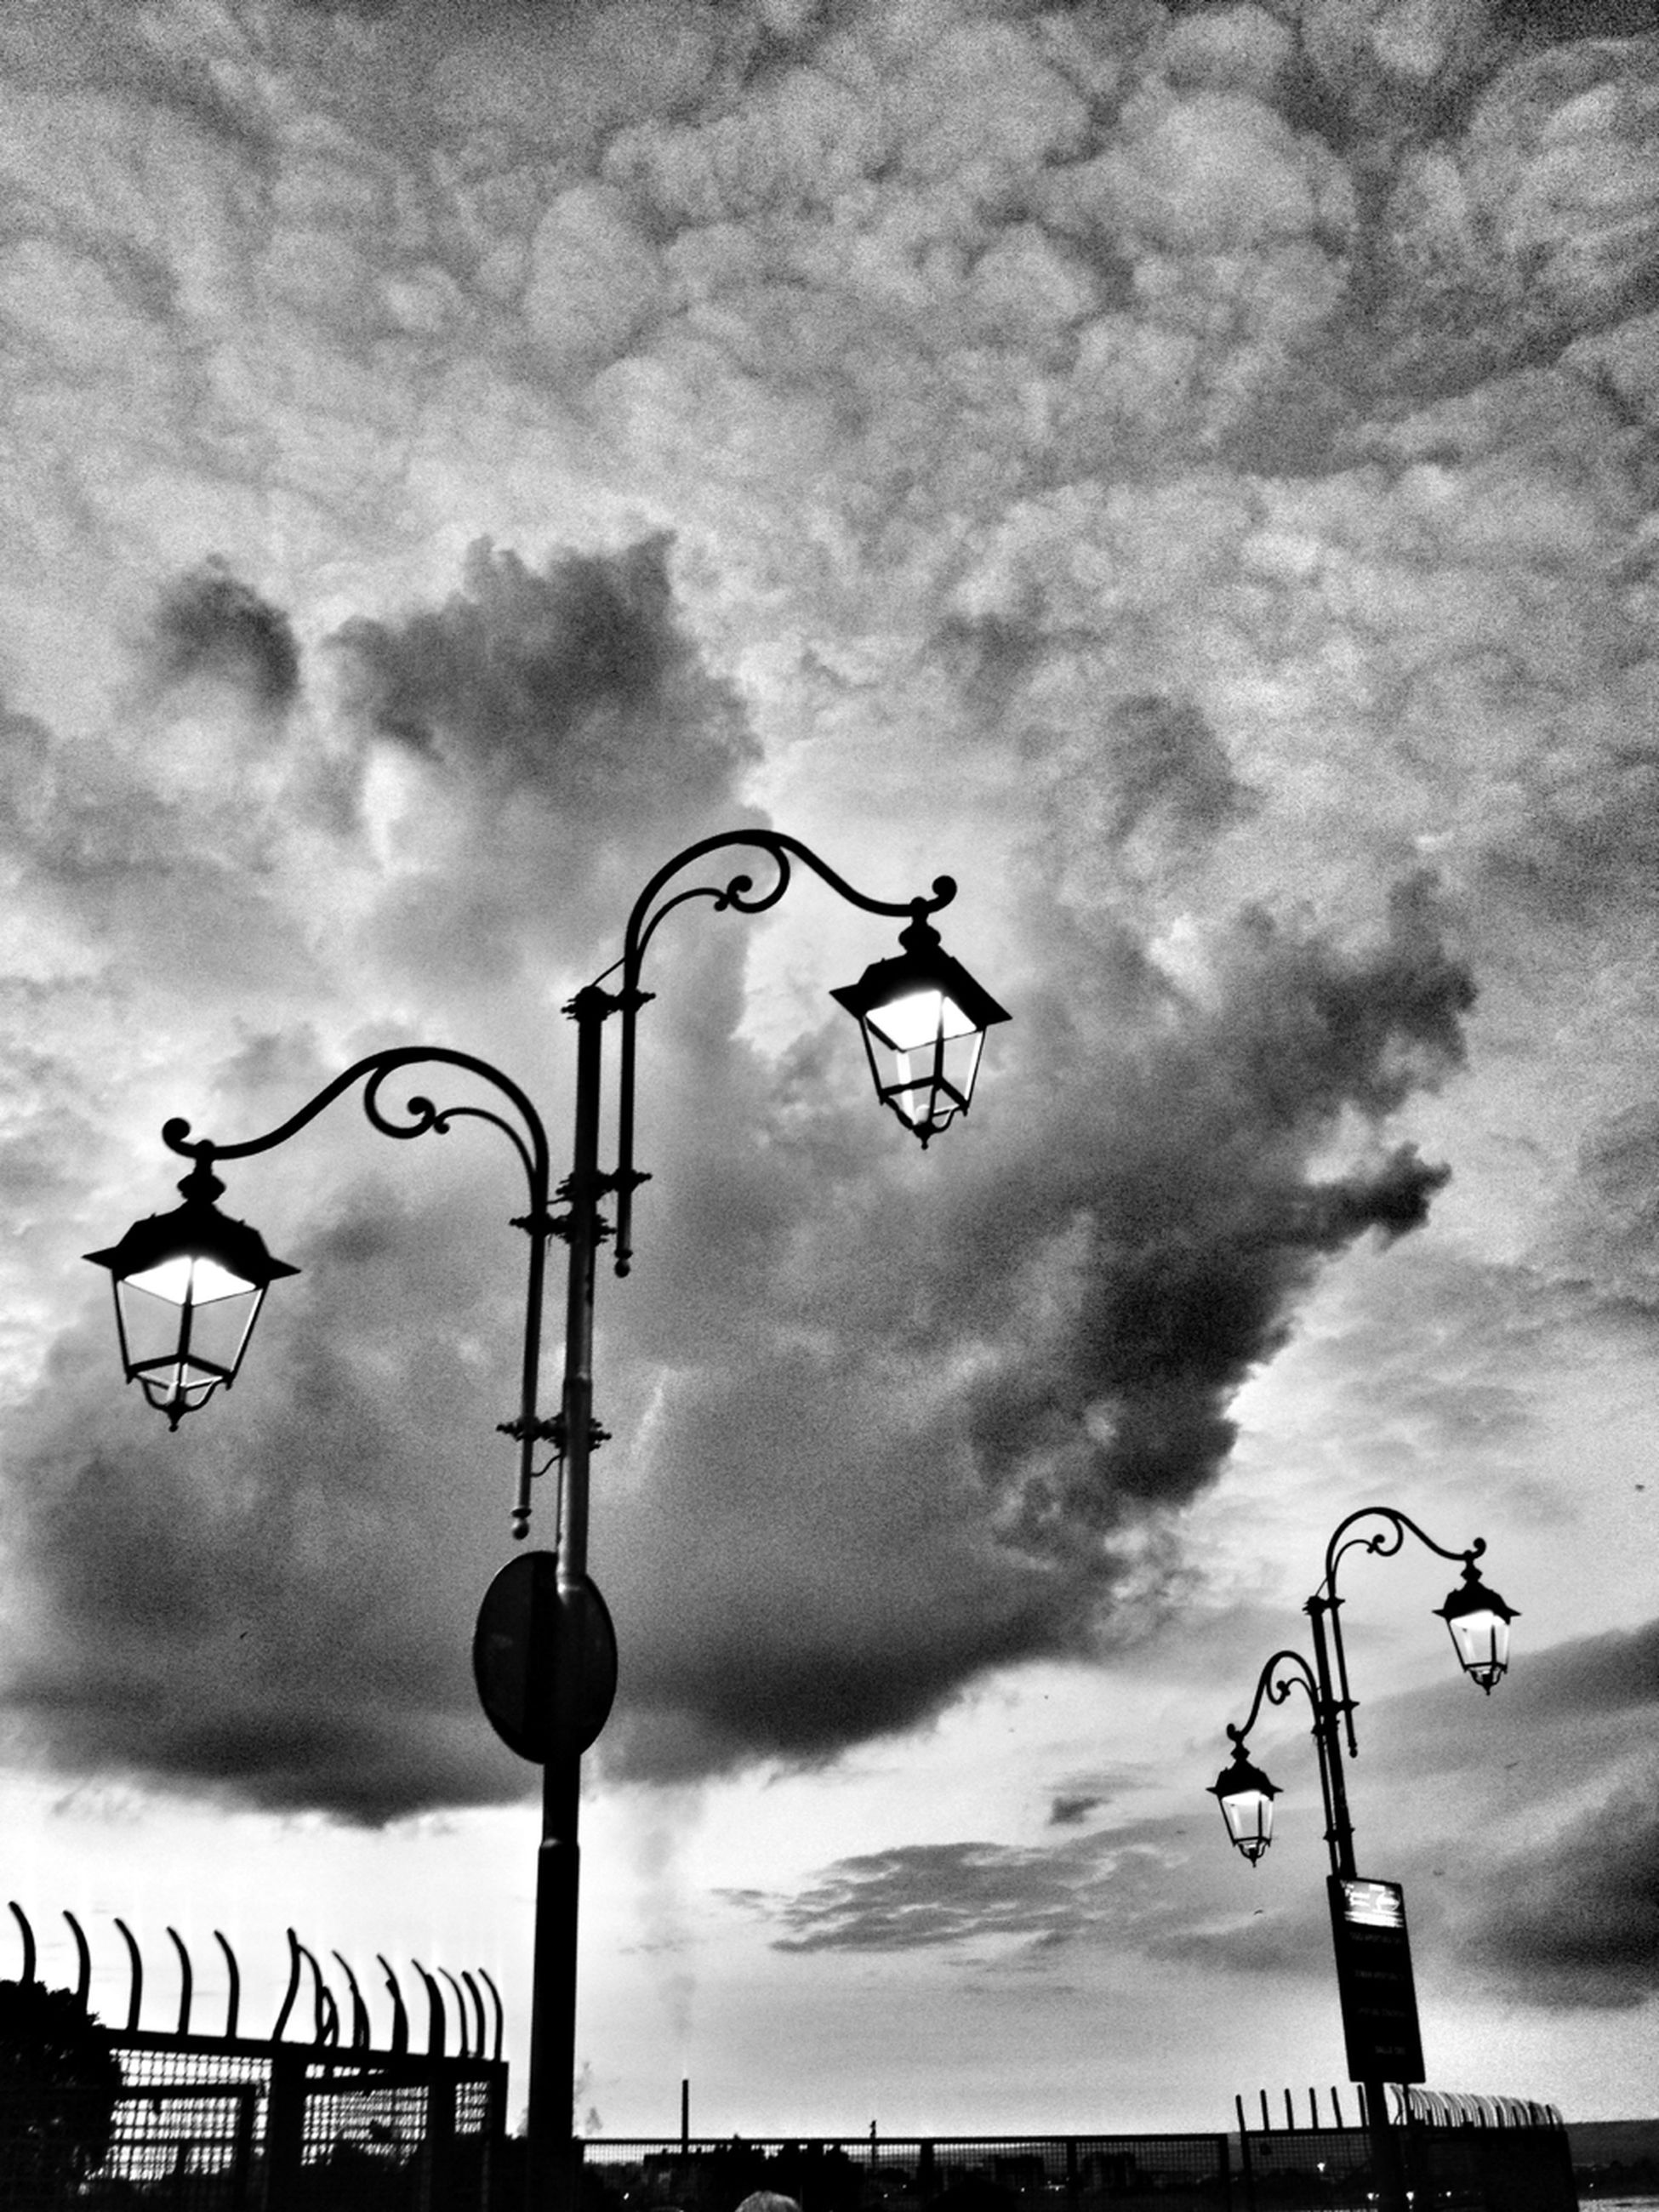 sky, cloud - sky, low angle view, cloudy, silhouette, overcast, cloud, street light, weather, dusk, lighting equipment, metal, communication, outdoors, pole, no people, animal representation, bicycle, day, text